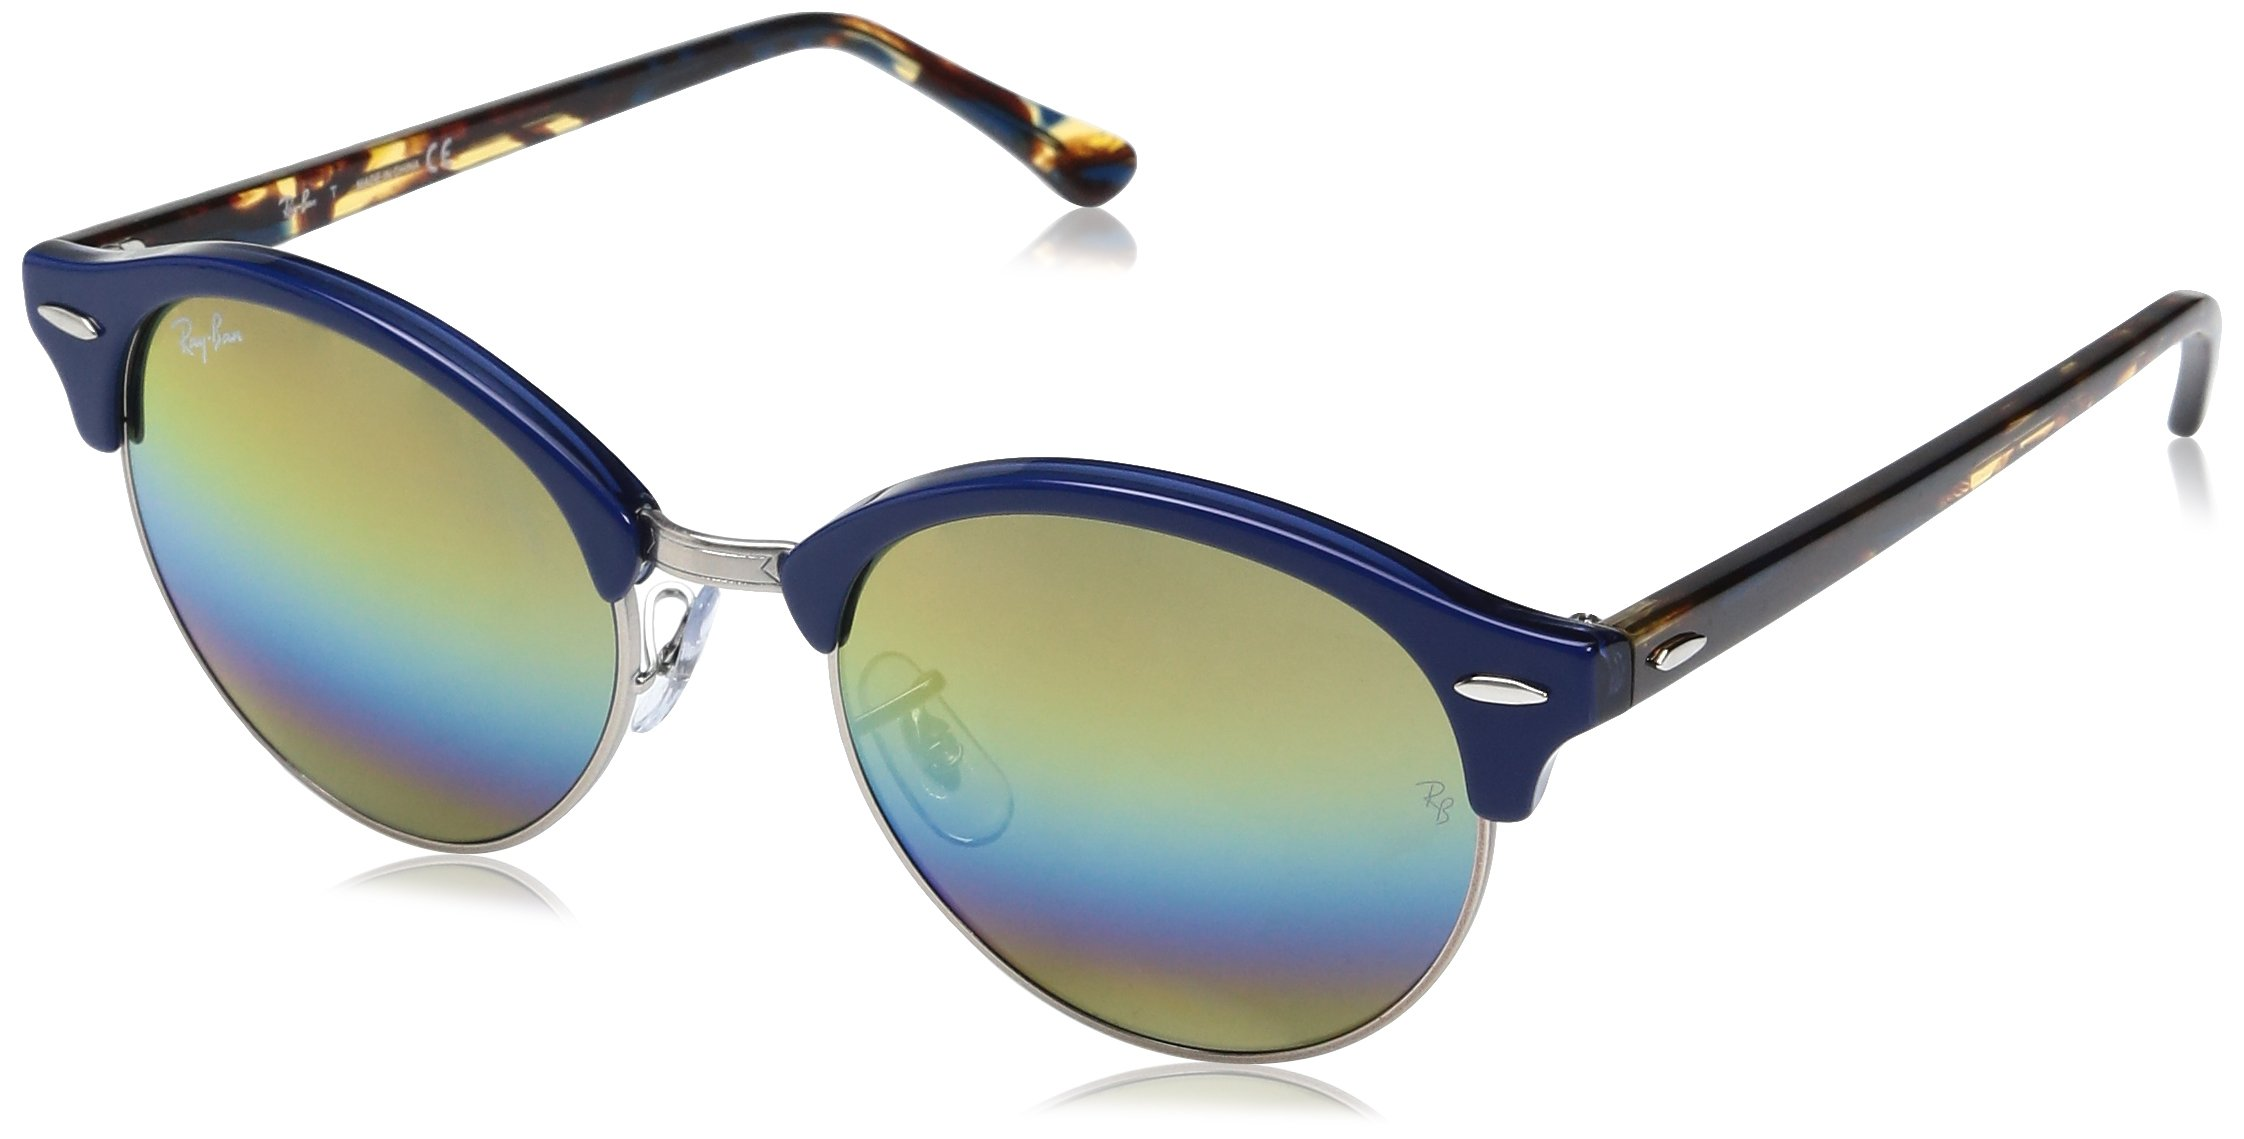 Ray-Ban Clubround Round Sunglasses, Top Blue on Trasparent Blue, 51 mm